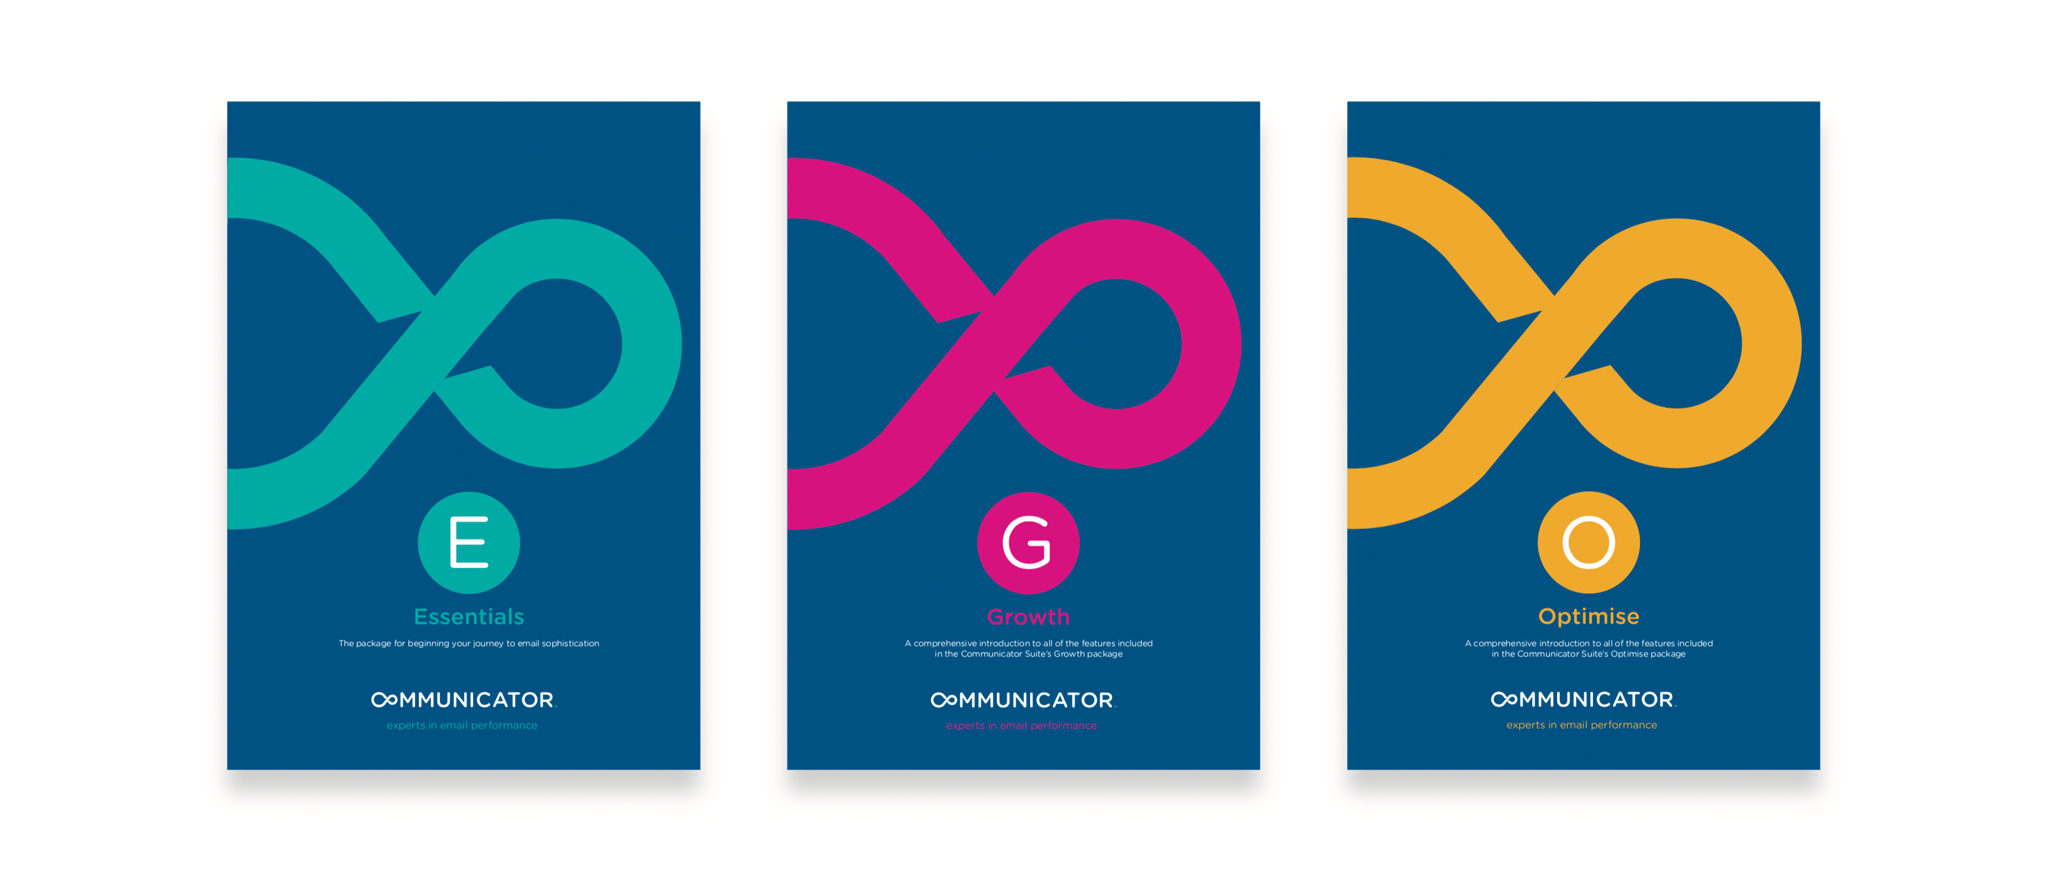 Communicator Campaign Brochure